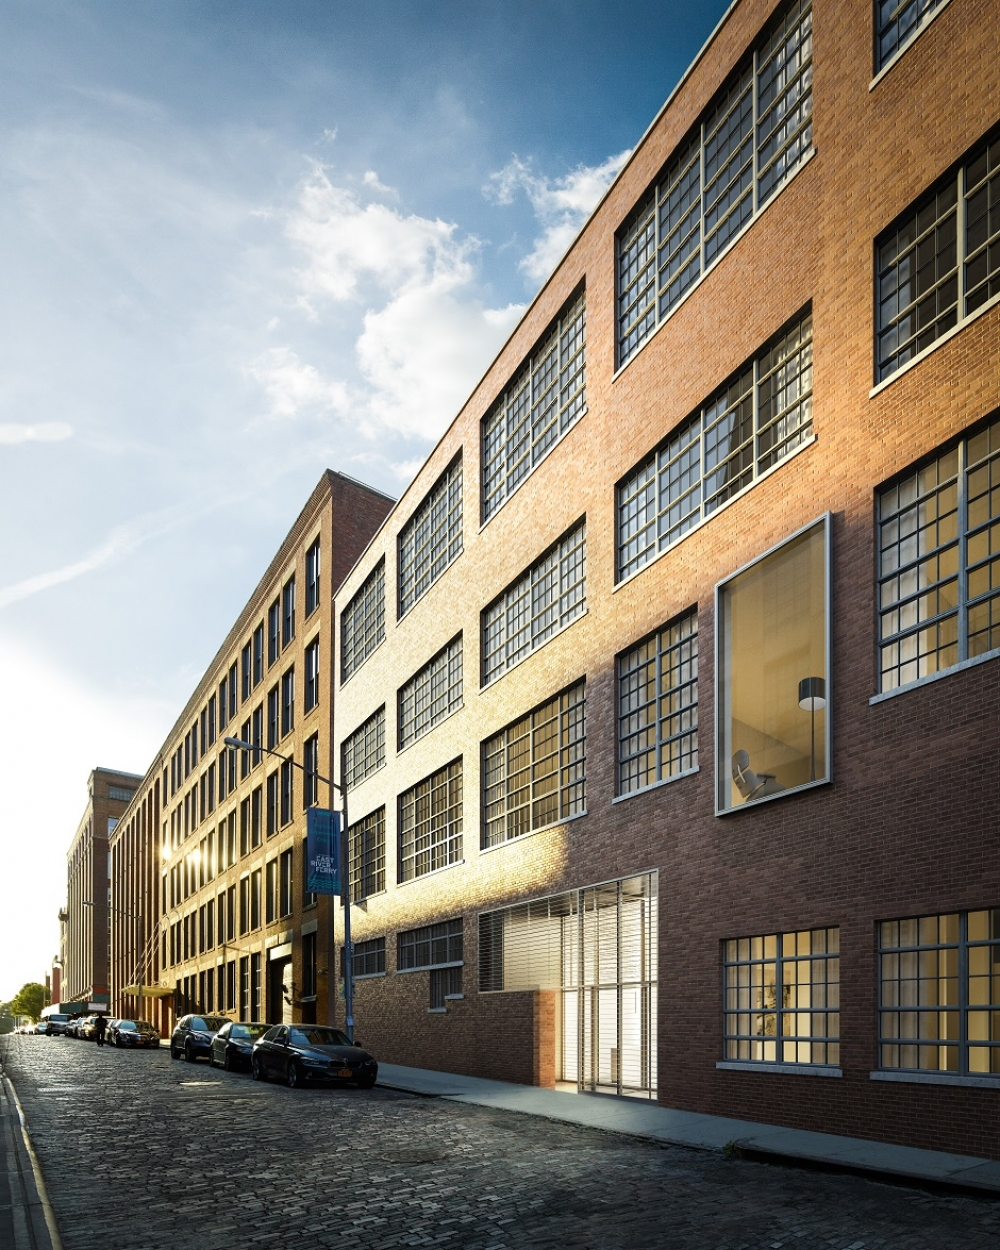 181 front street reaches second floor dumbo new york yimby